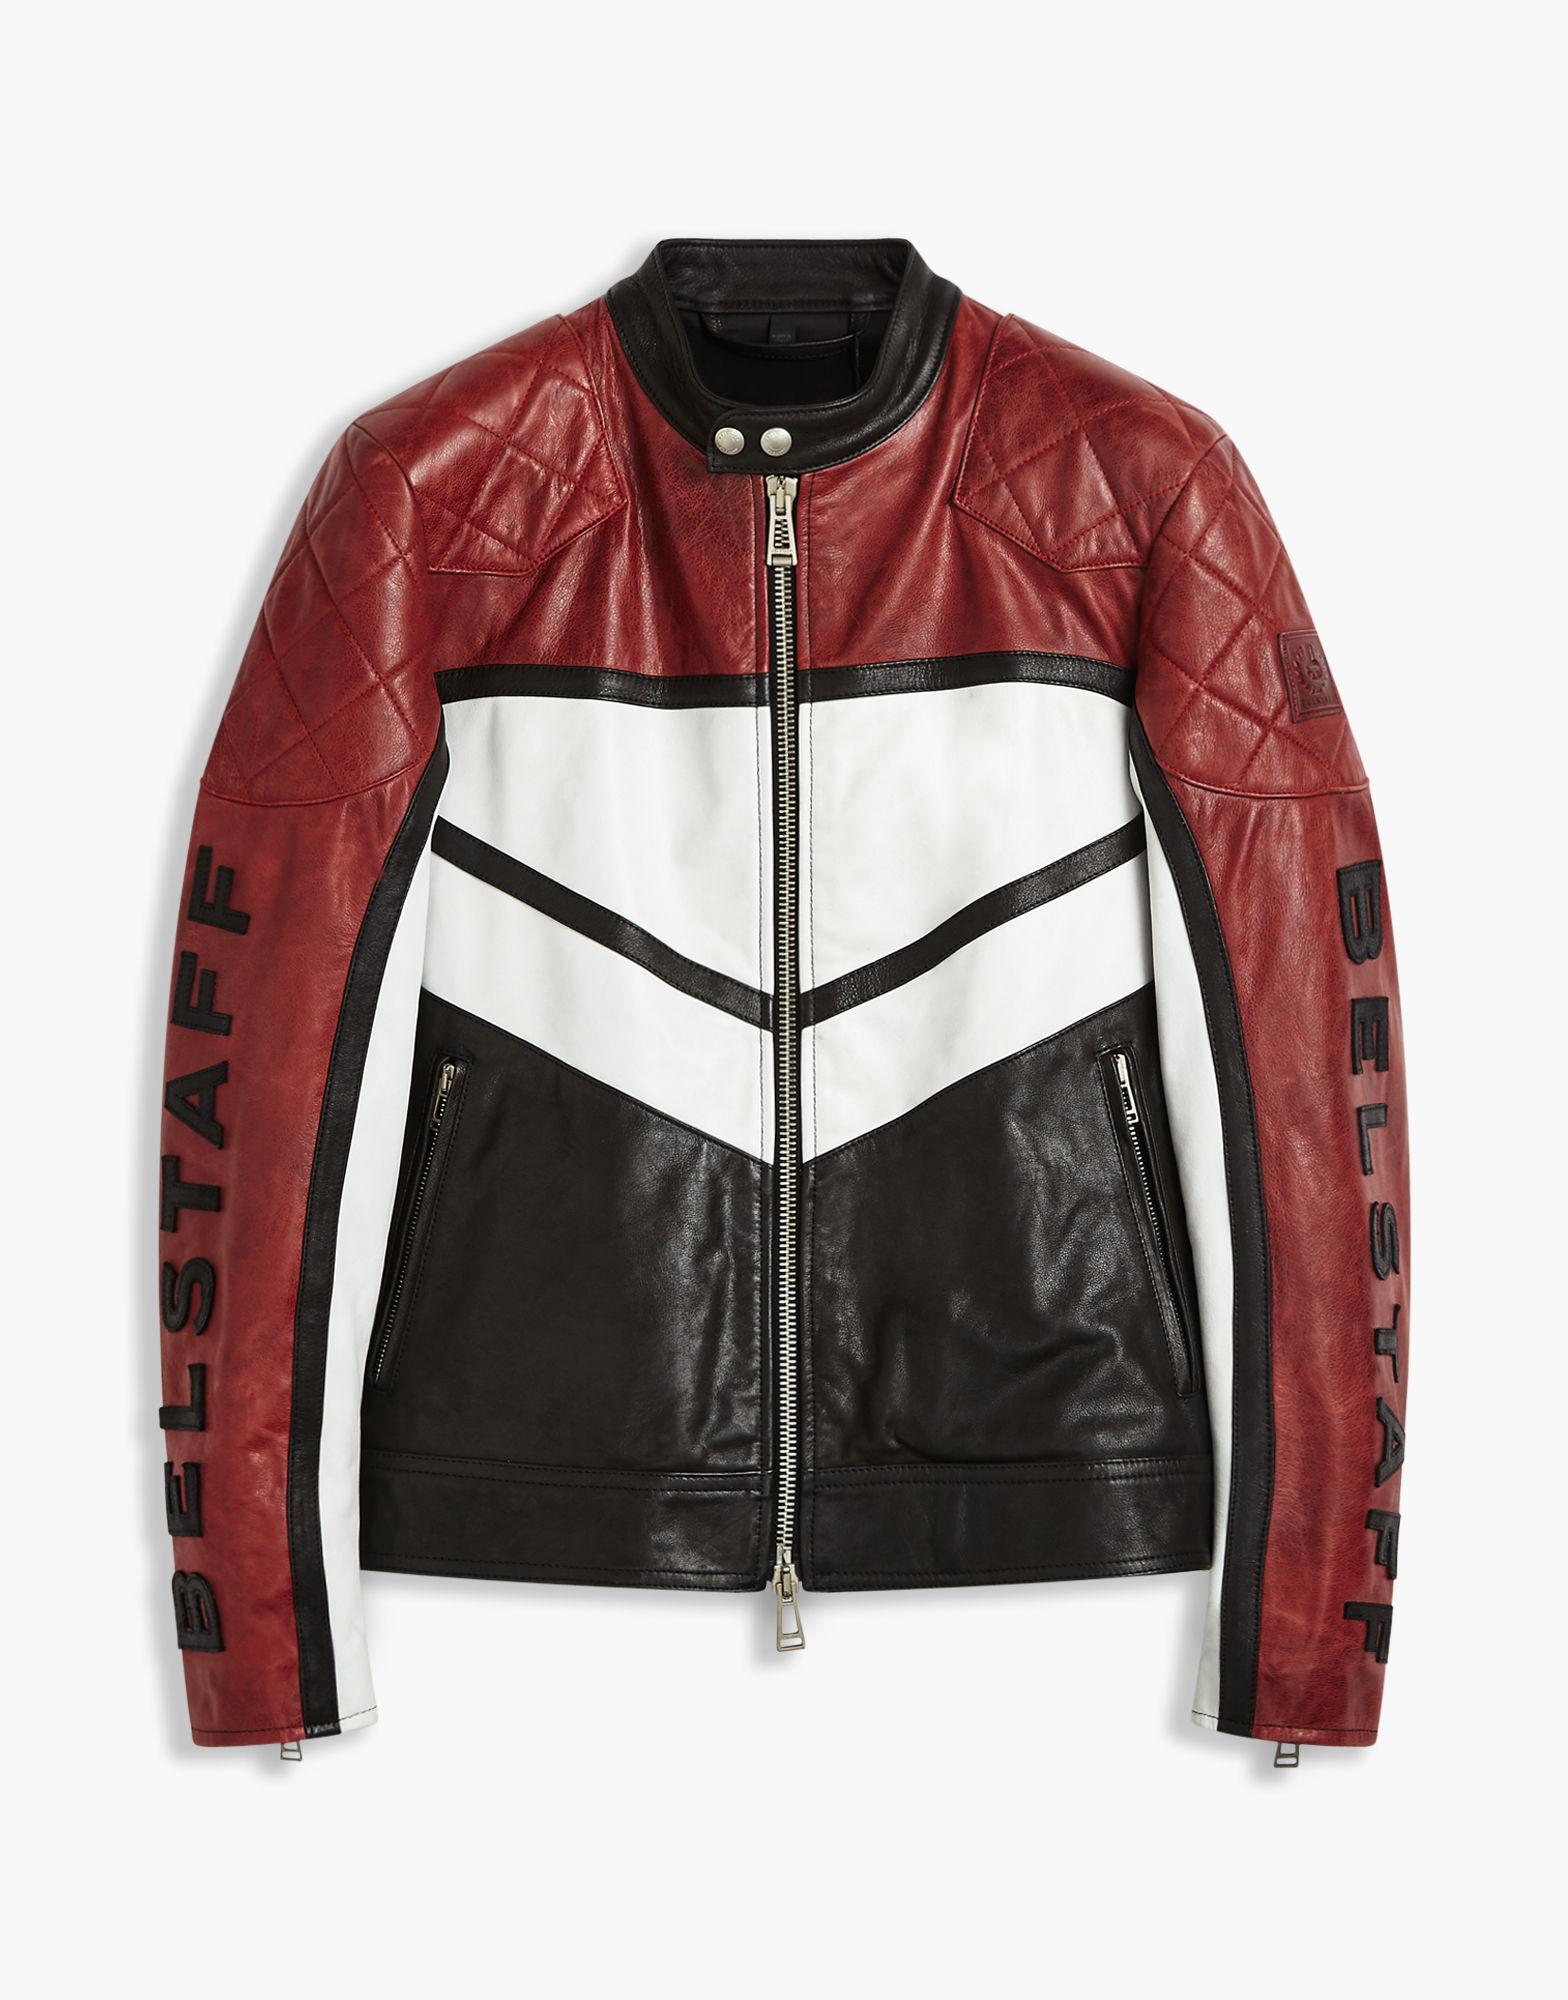 Morleigh biker jacket - £1,450 at Belstaff